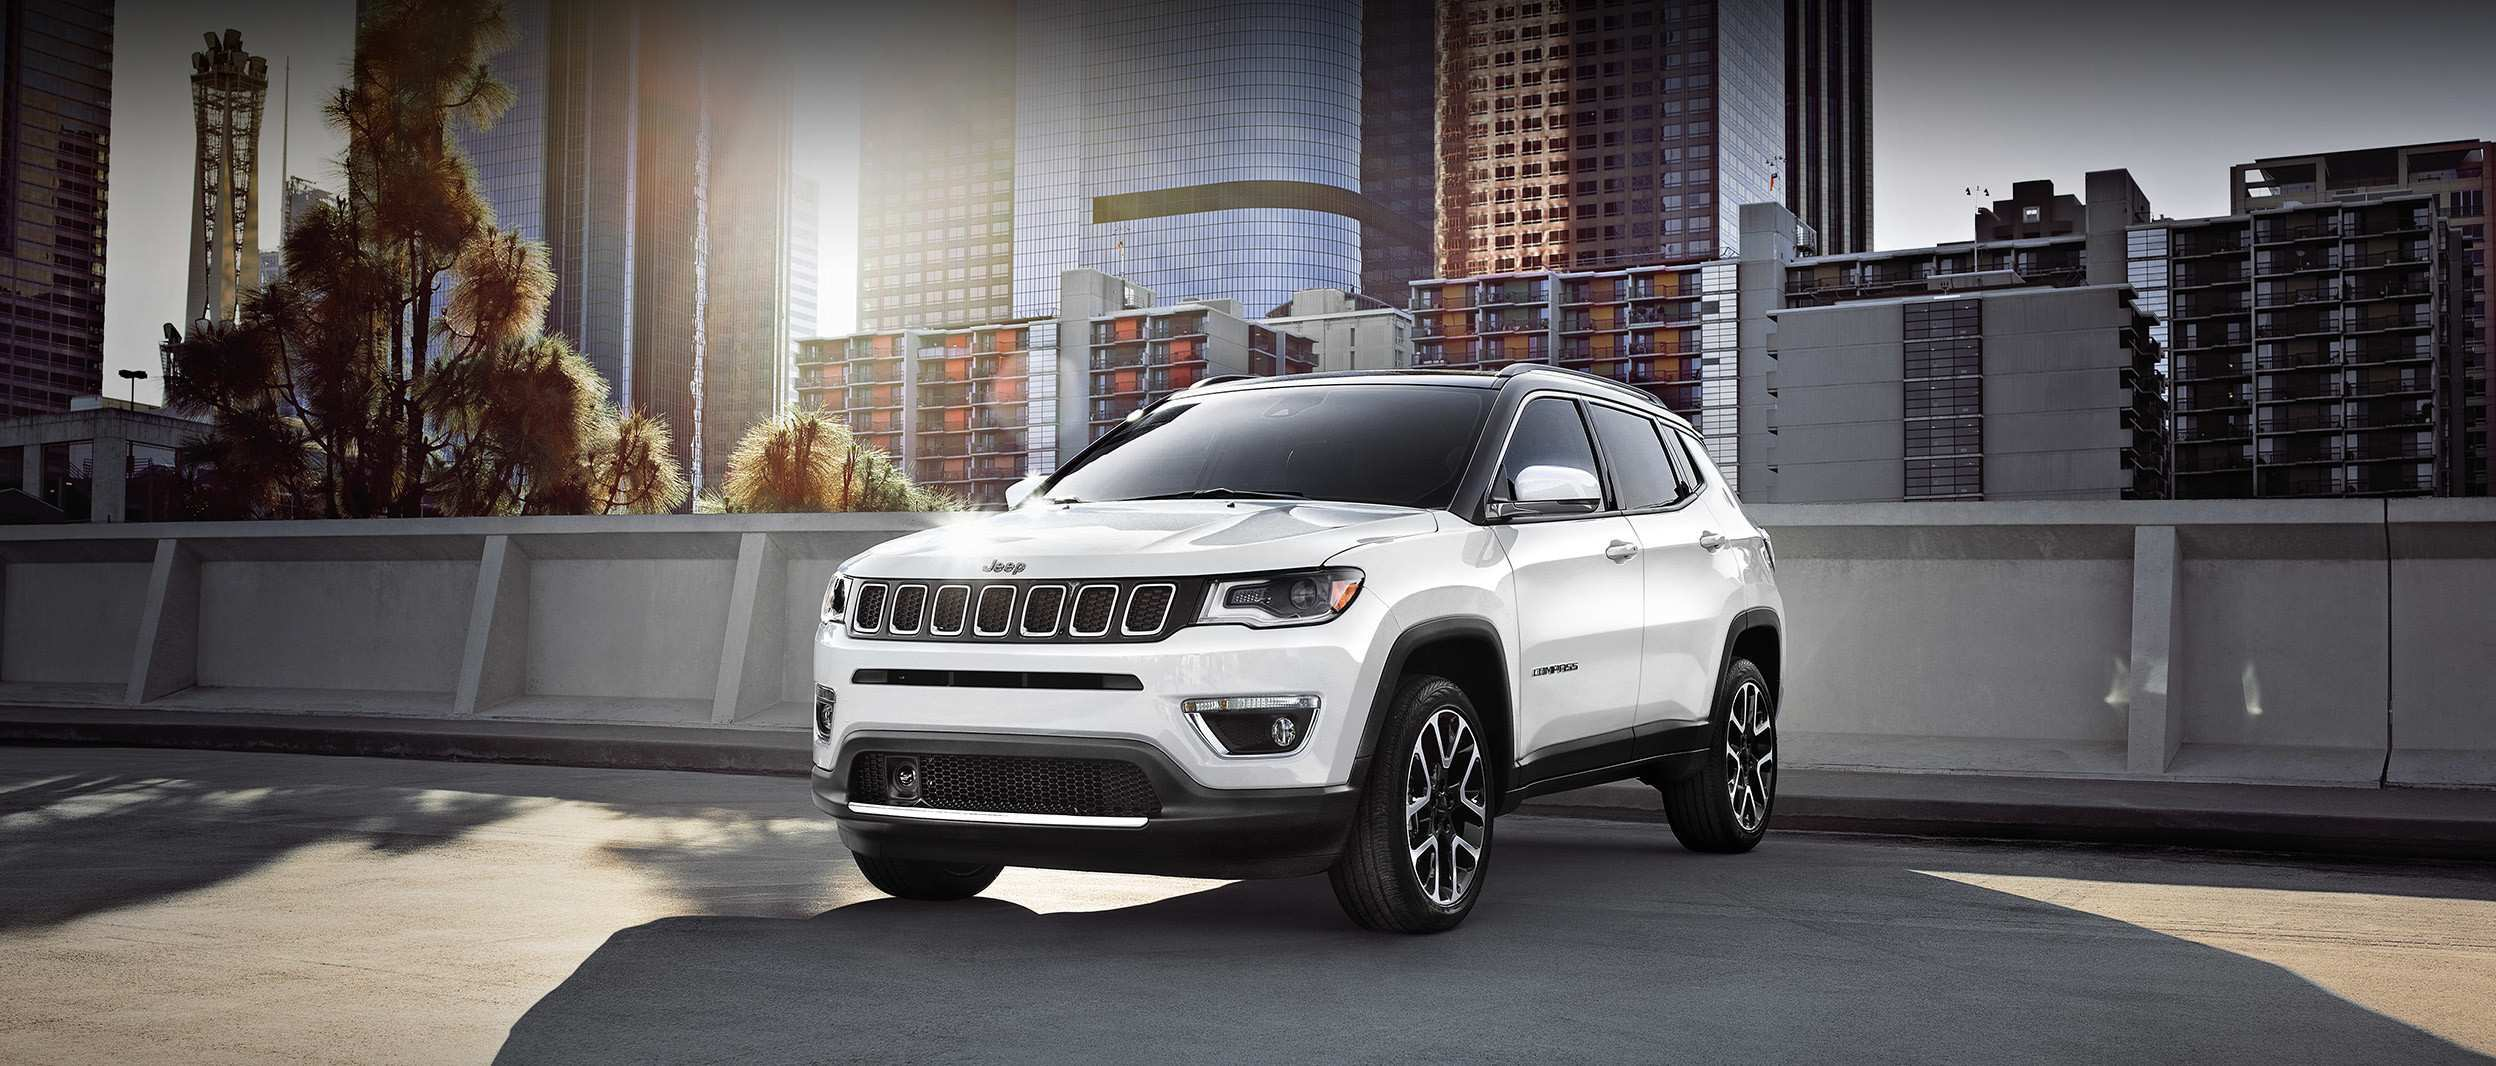 59 All New 2019 Jeep Suv Picture